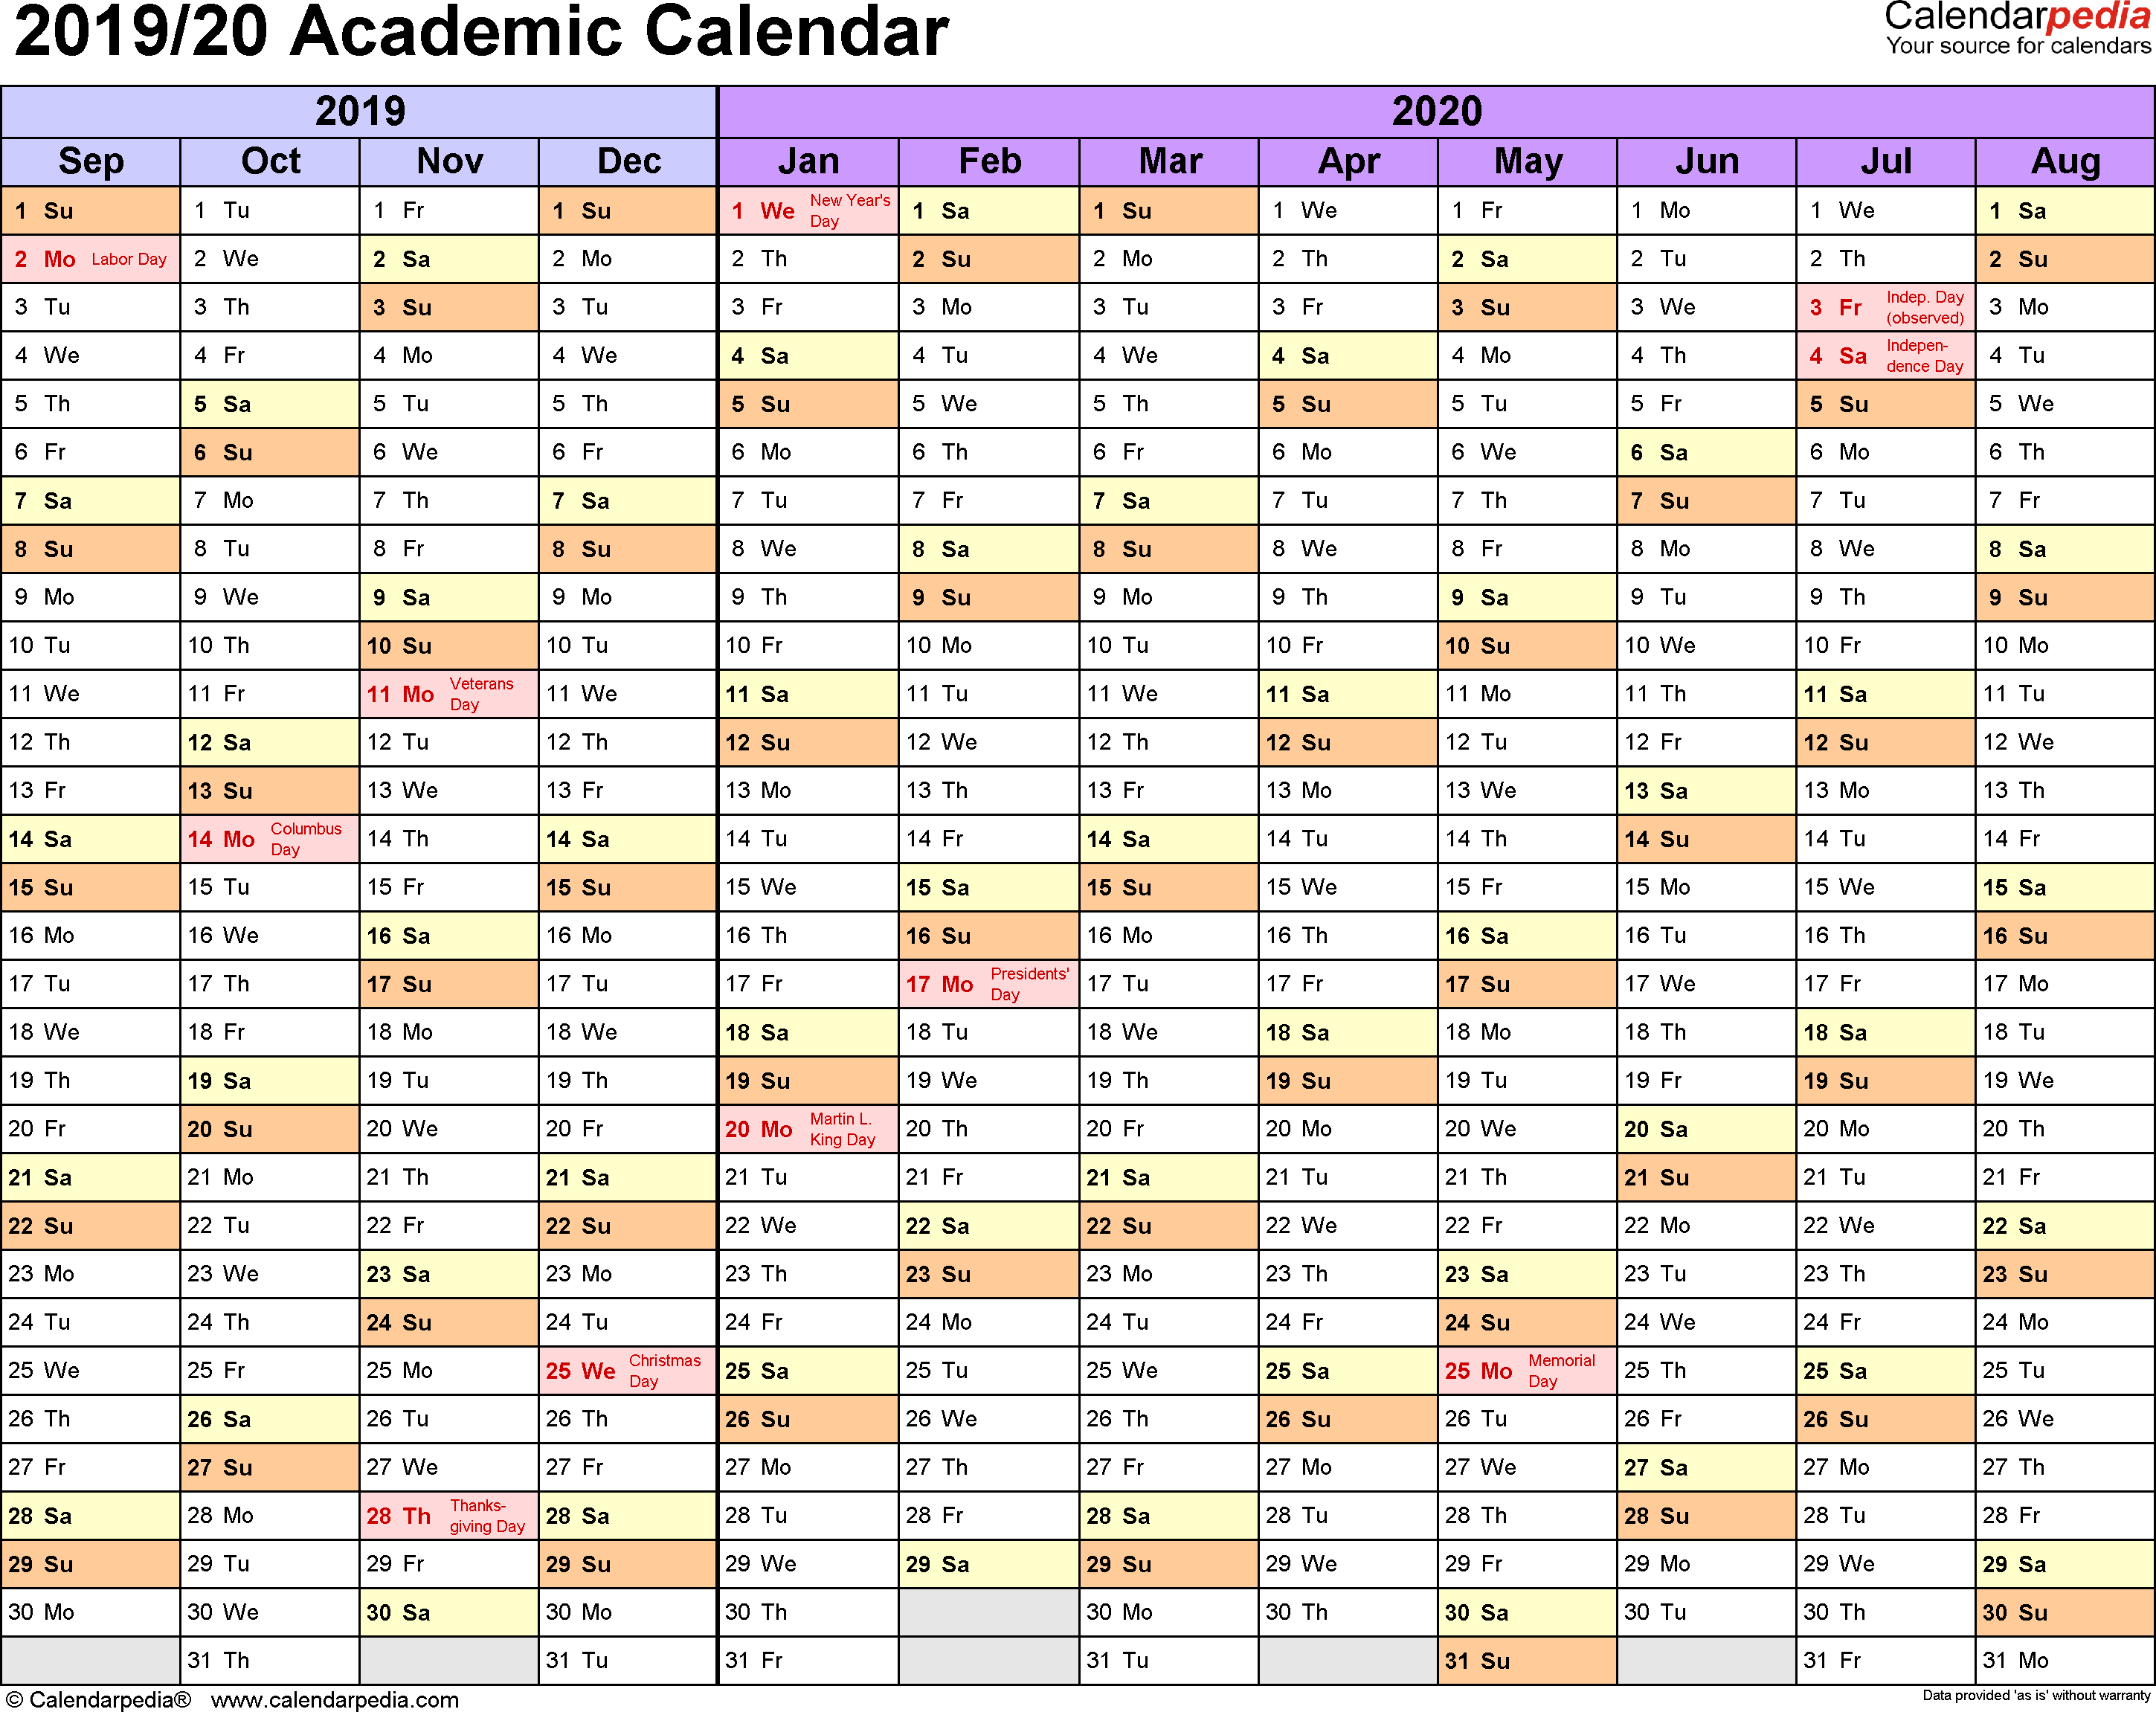 Academic Calendars 2019/2020 - Free Printable Pdf Templates with June 2019-June 2020 Yearly Calendar